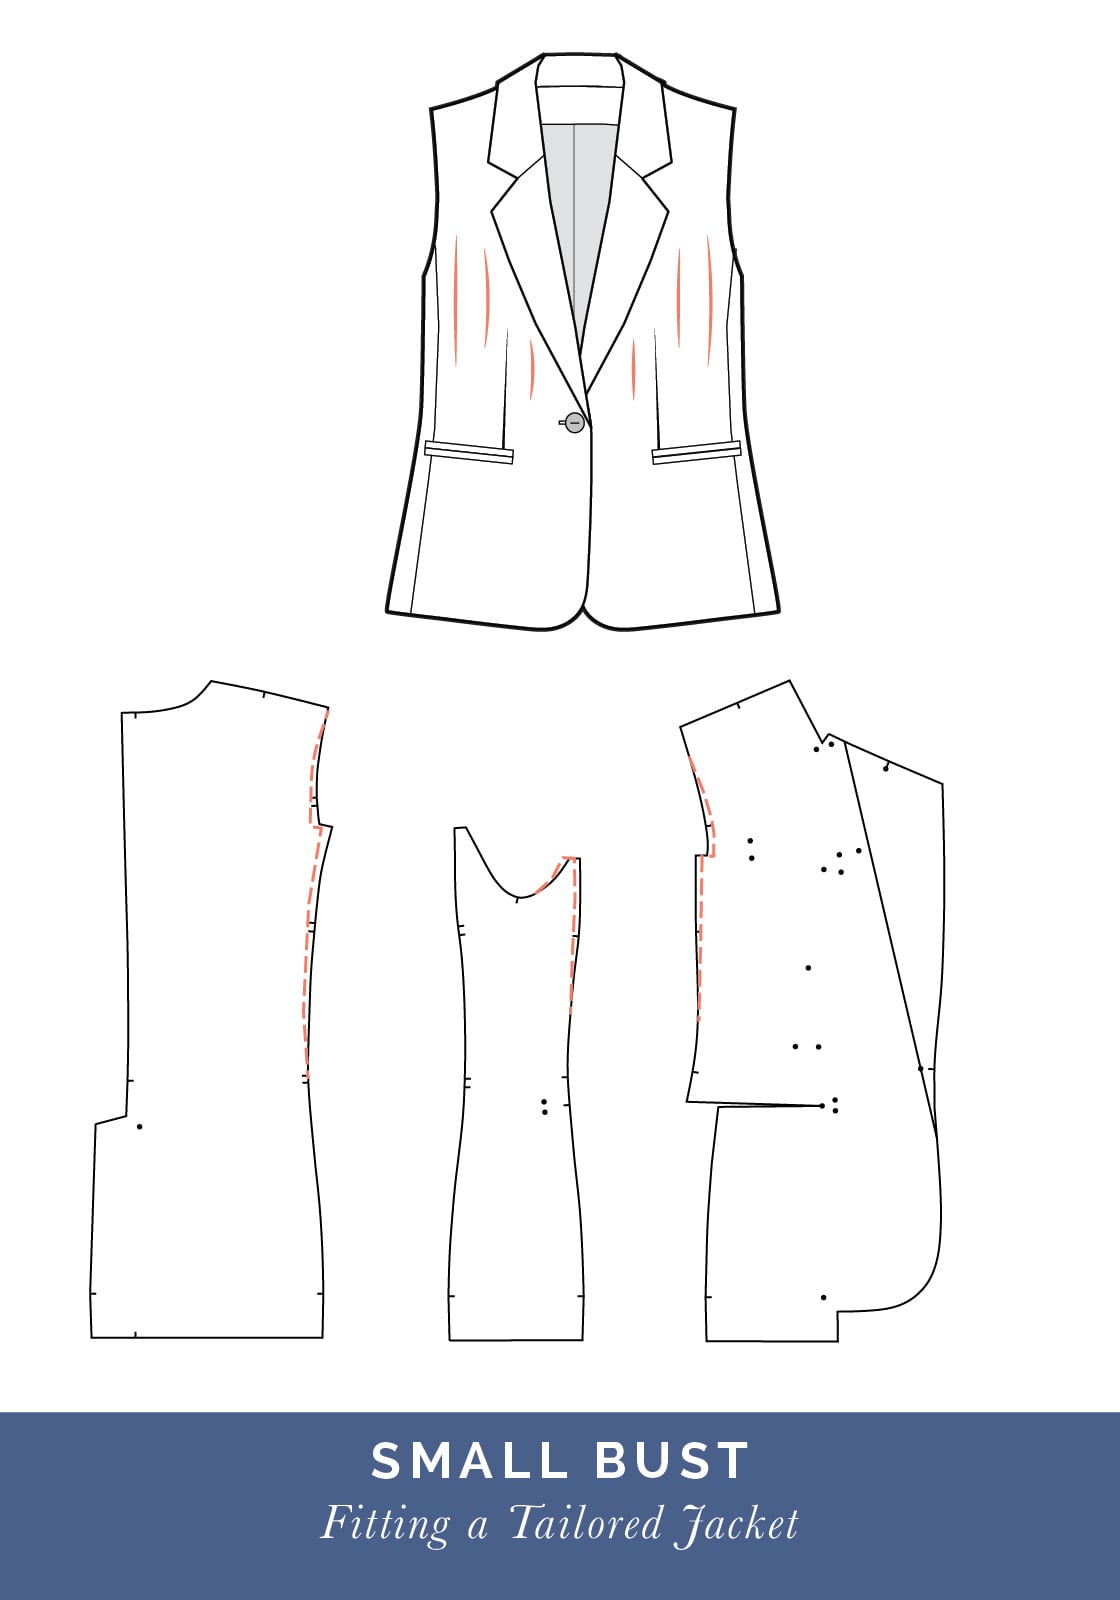 Small bust adjustment // How to fit a Tailored jacket or Blazer // Fit adjustment issues and fixes